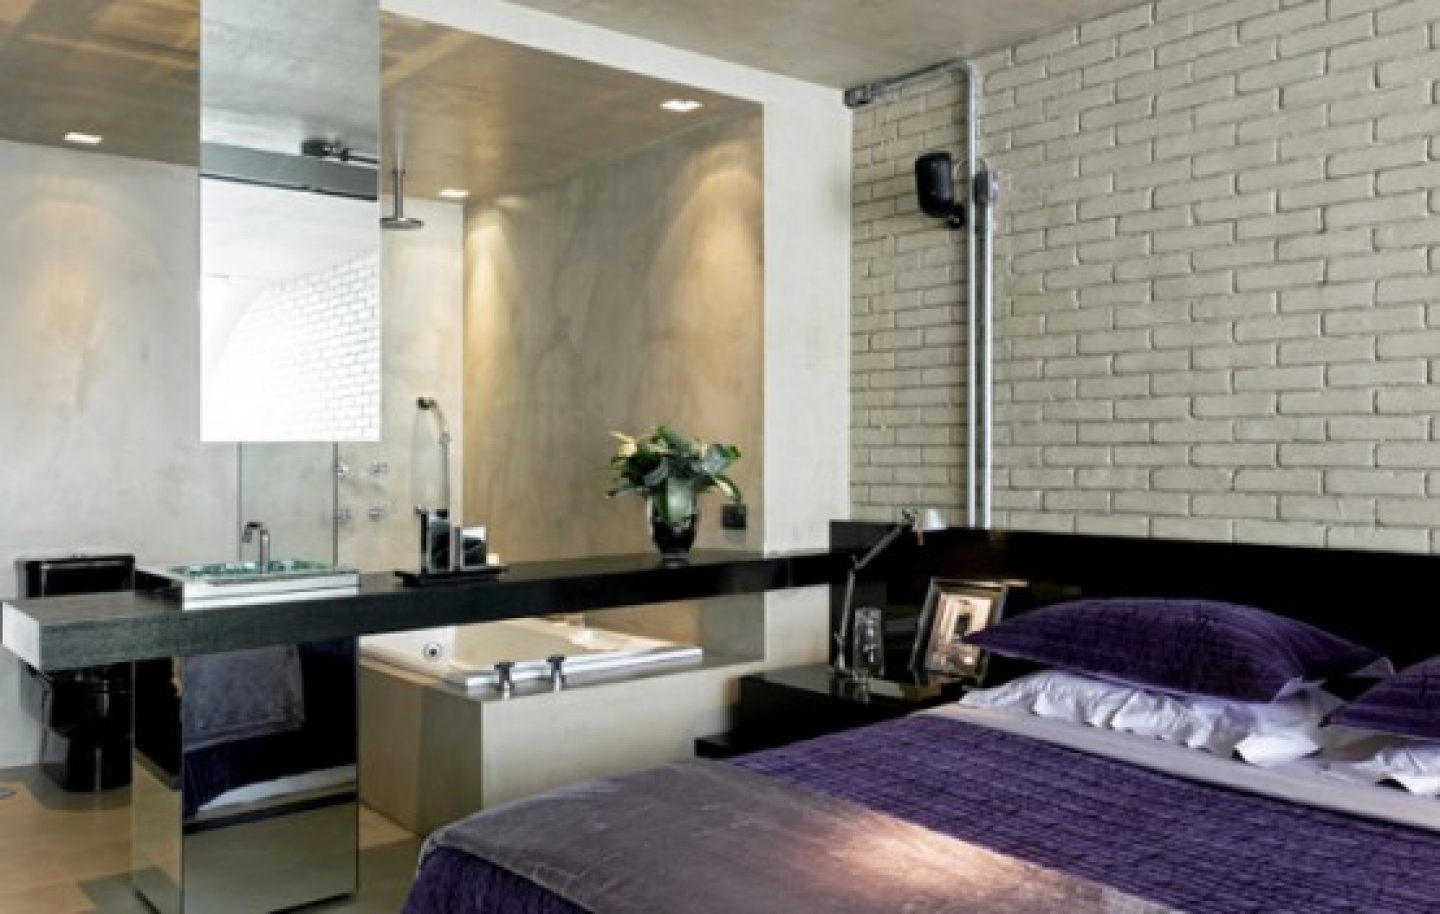 Models for an Urban Bedroom Style 2014 - Simple Home Architecture